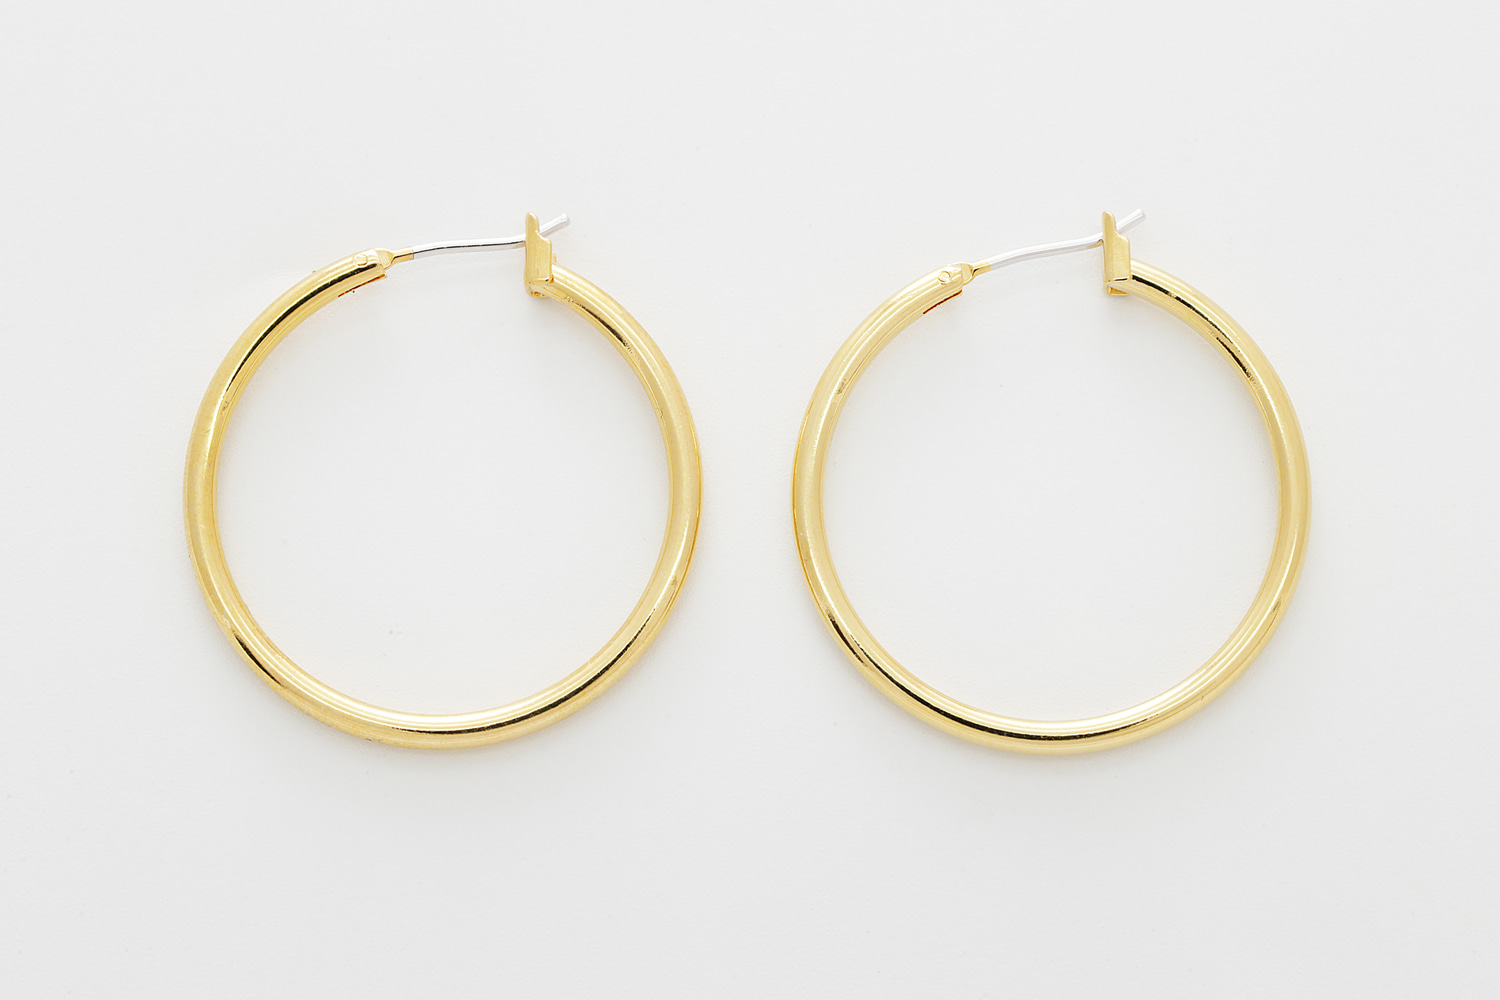 [T66-R1] Hoop Earrings, Brass, Stainless steel post, Nickel free, Simple earrings, Handmade jewelry, Round earring